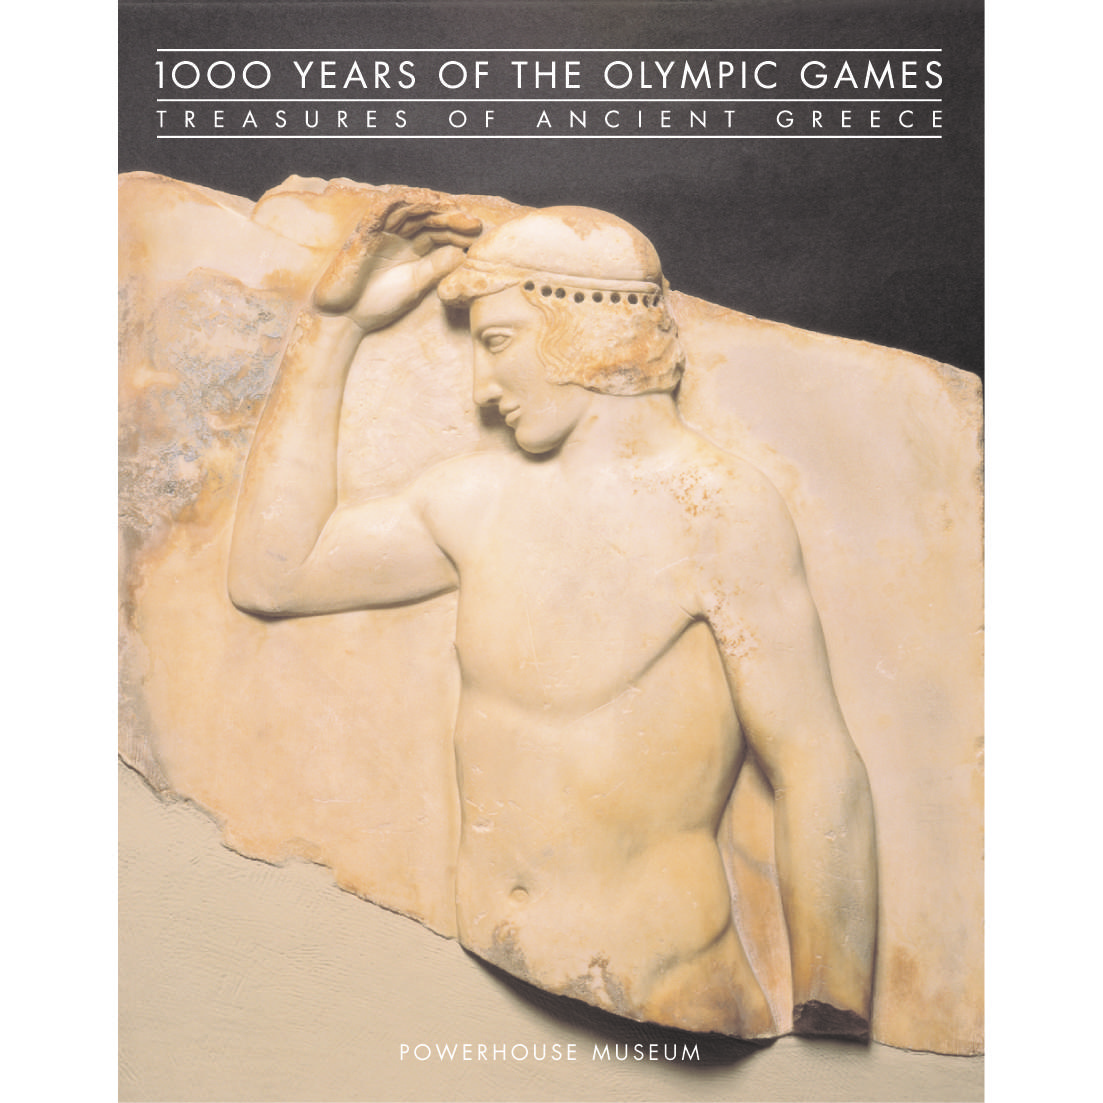 years of the olympic games treasures of ancient 1000 years of the olympic games book cover